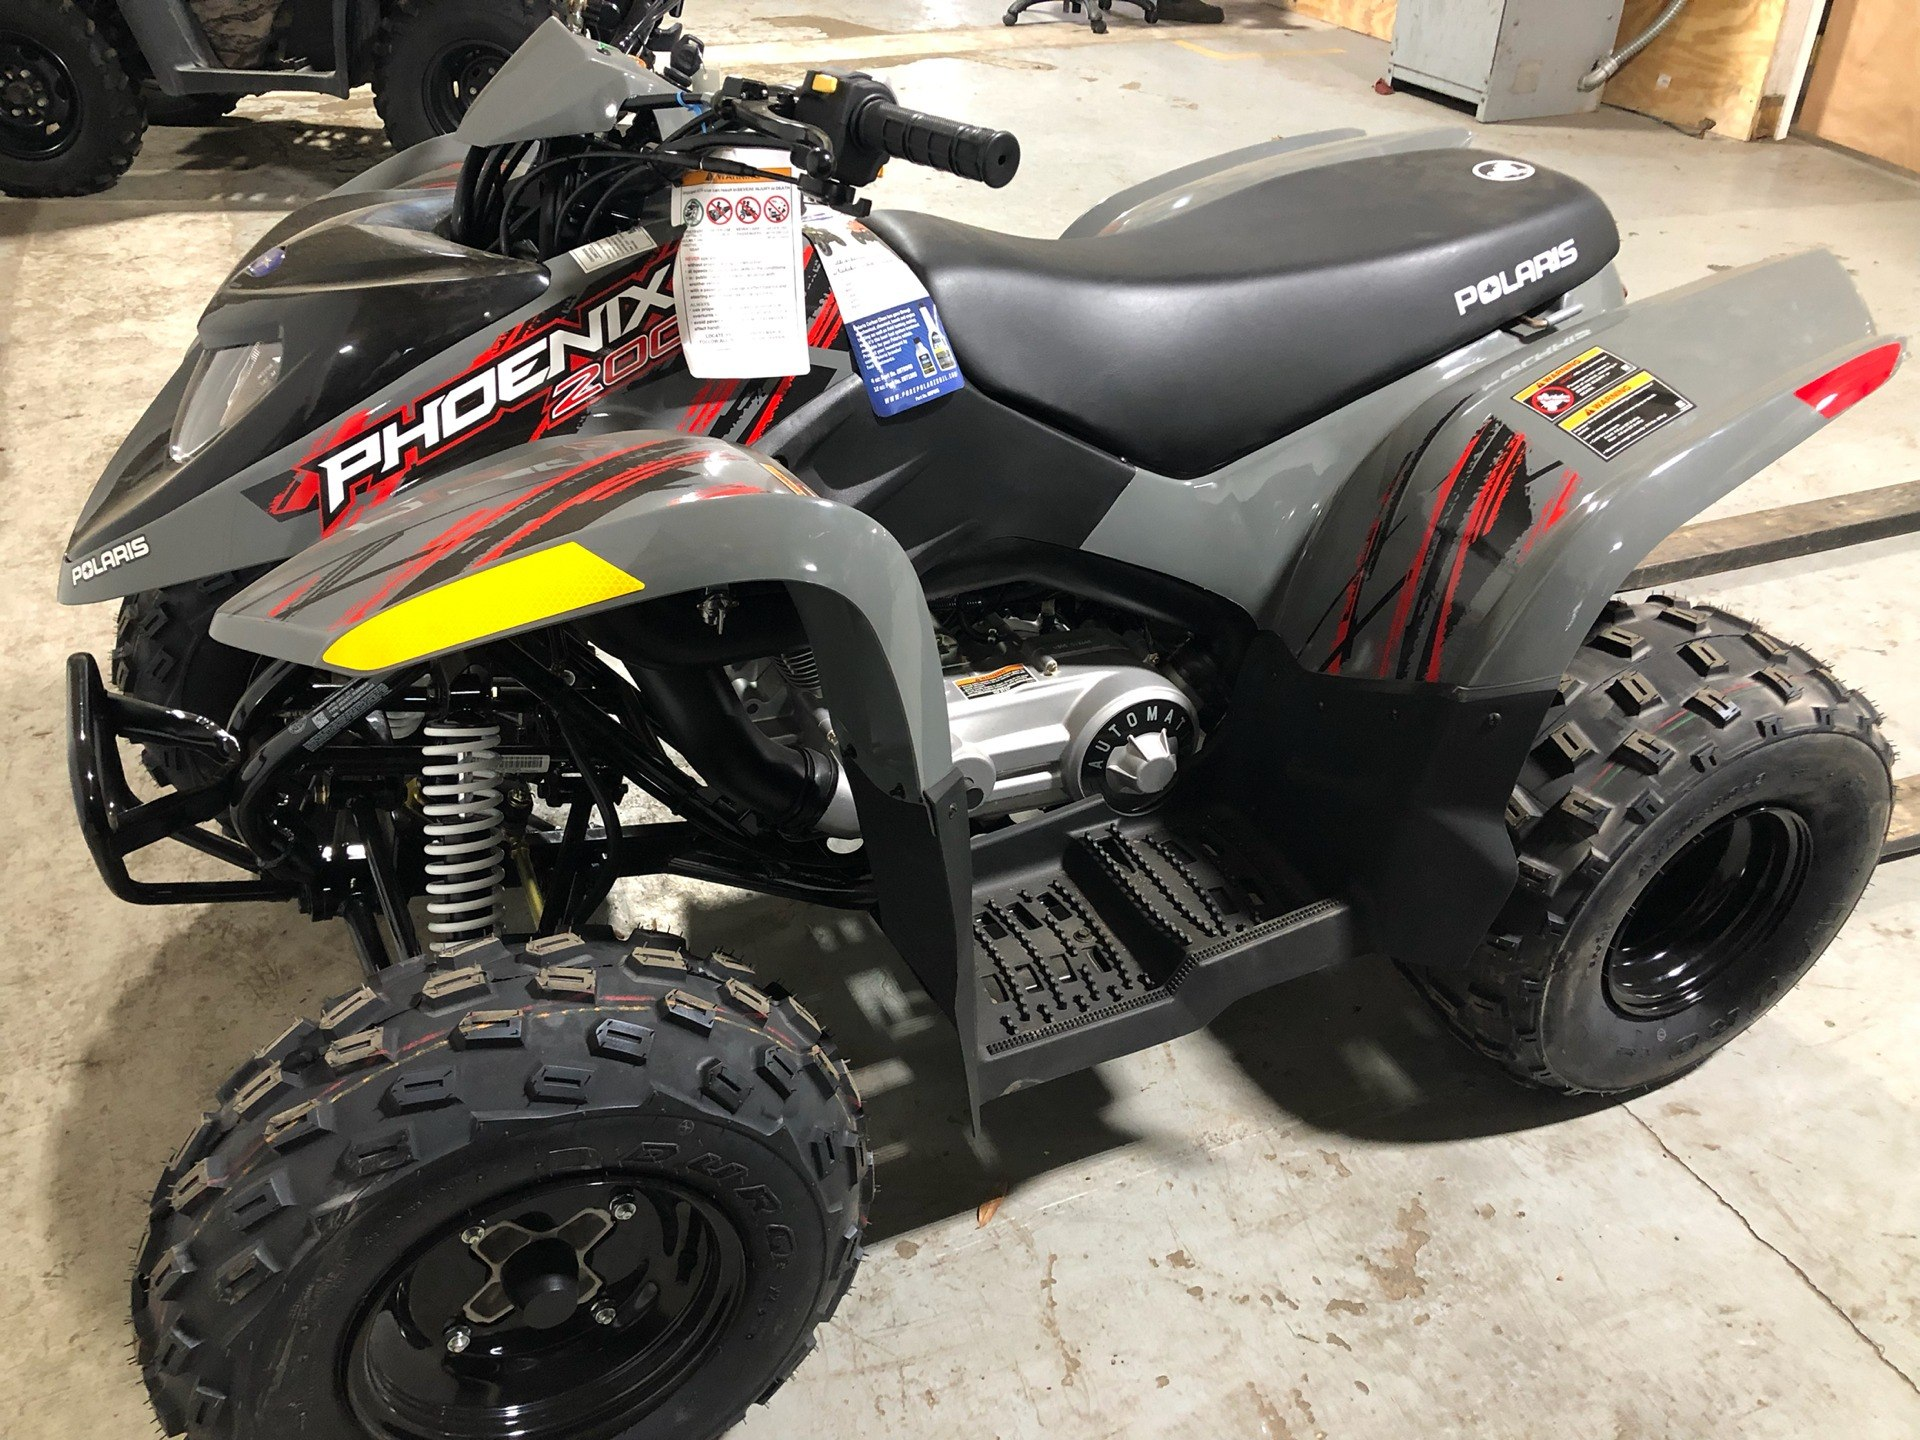 2019 Polaris Phoenix 200 for sale 11499